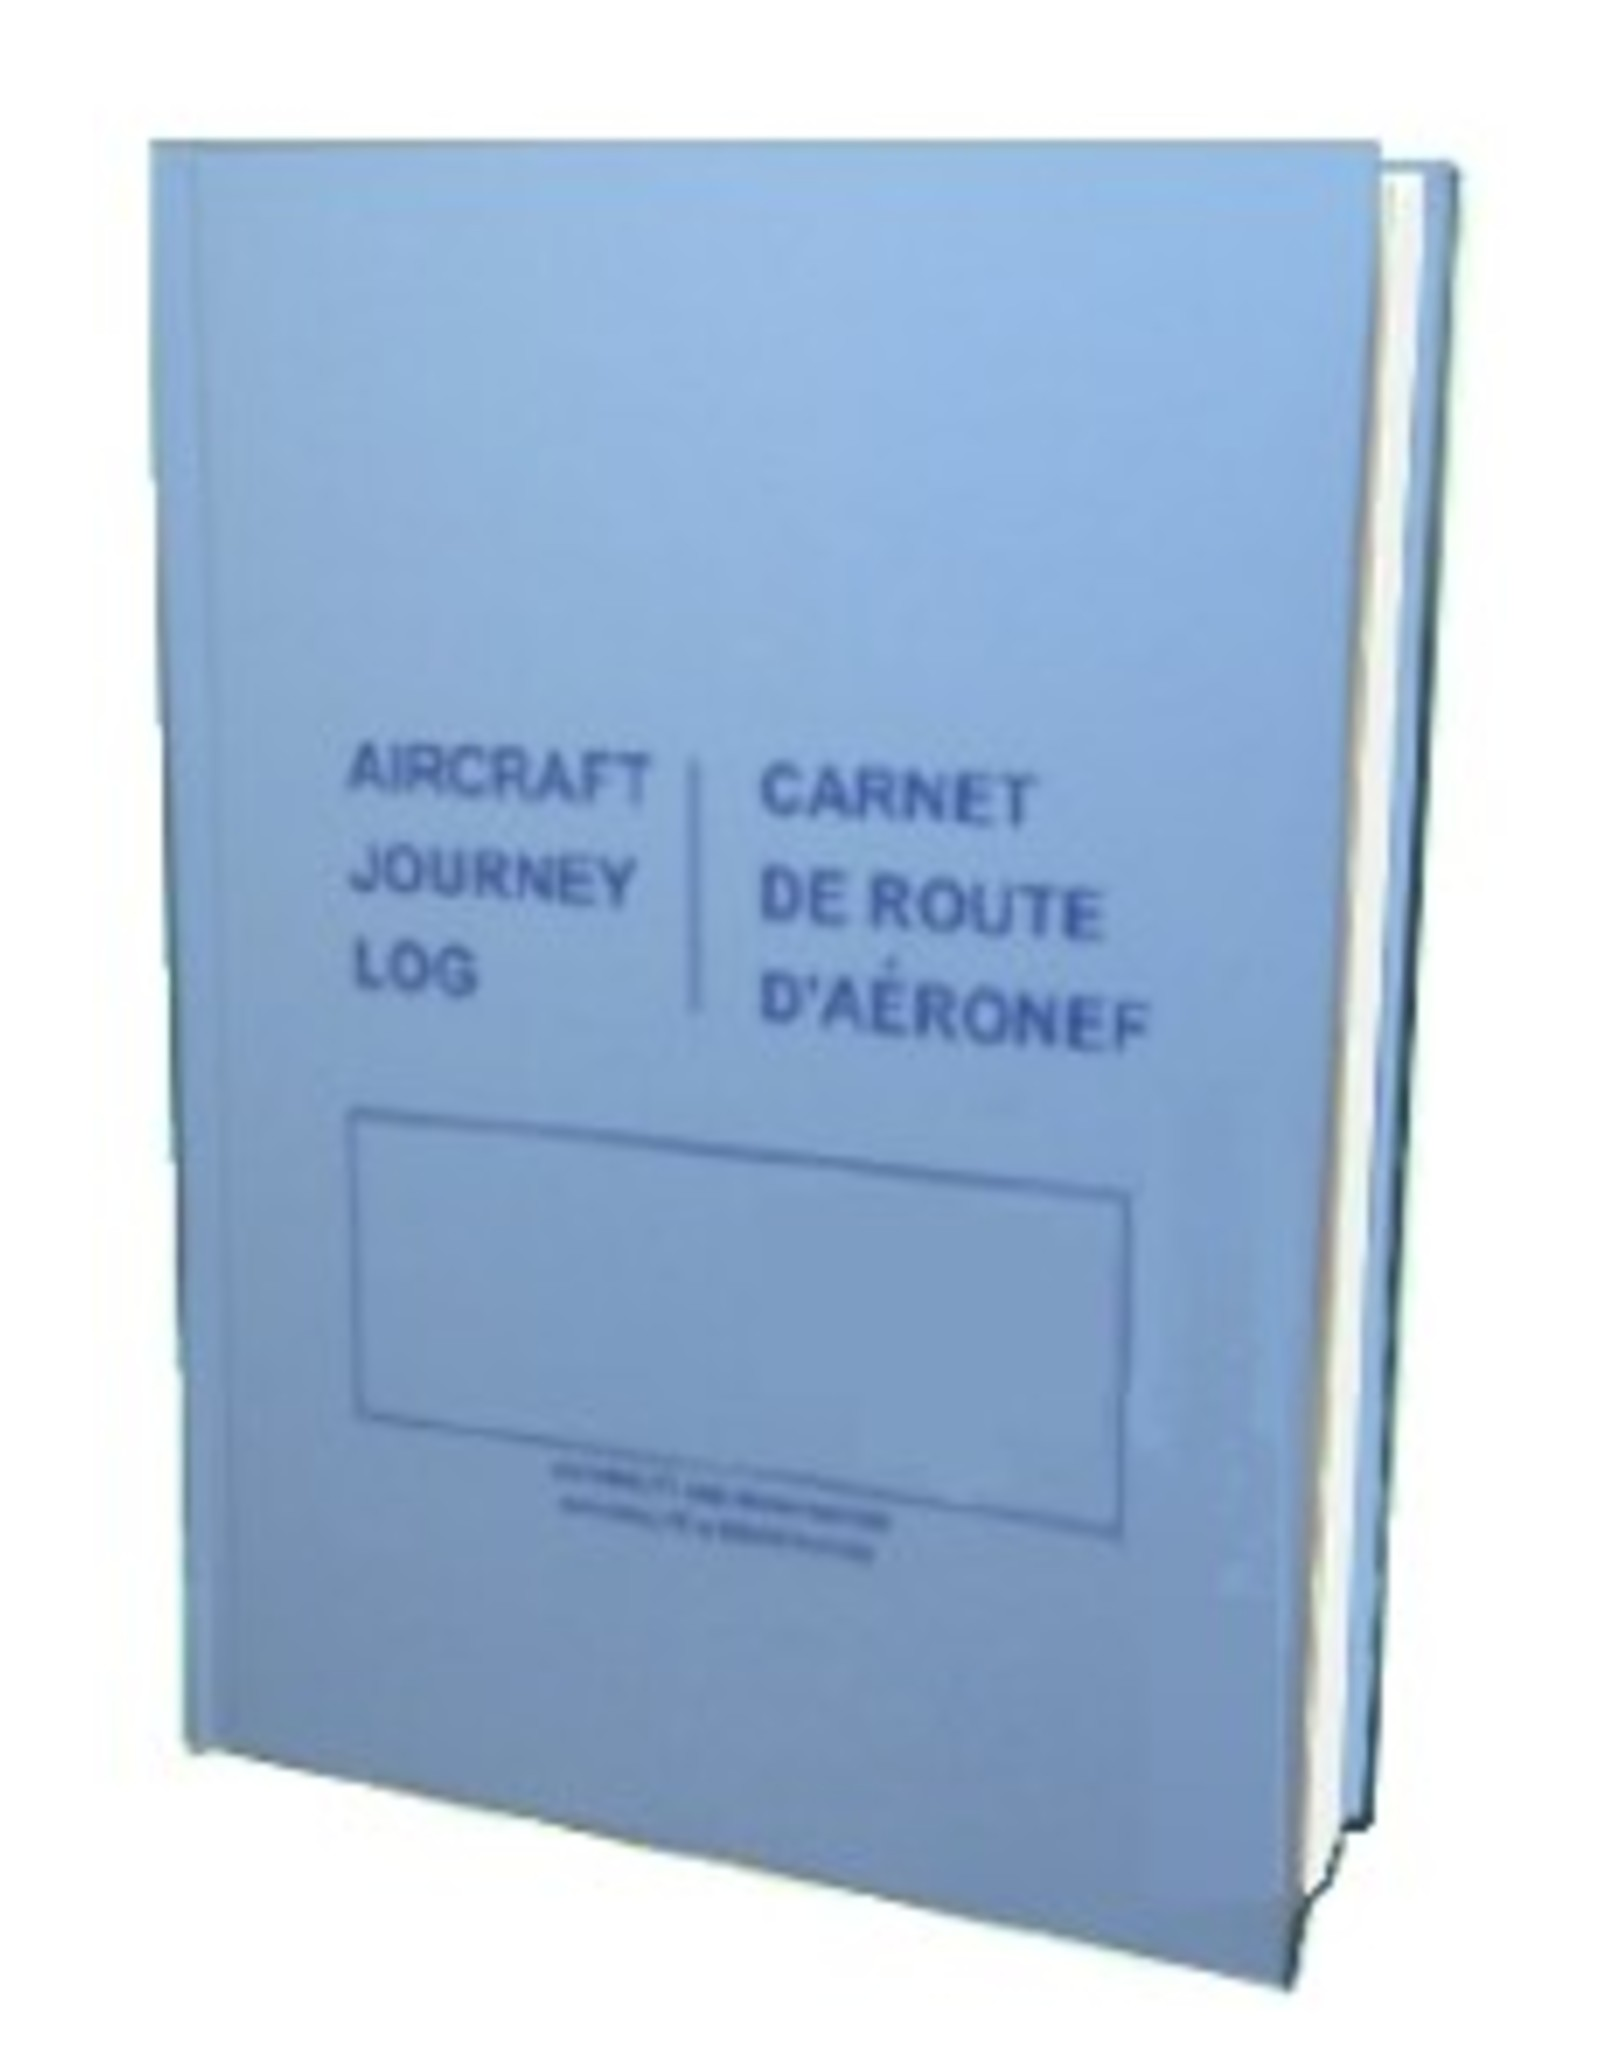 Aircraft Journey Log HC ATP